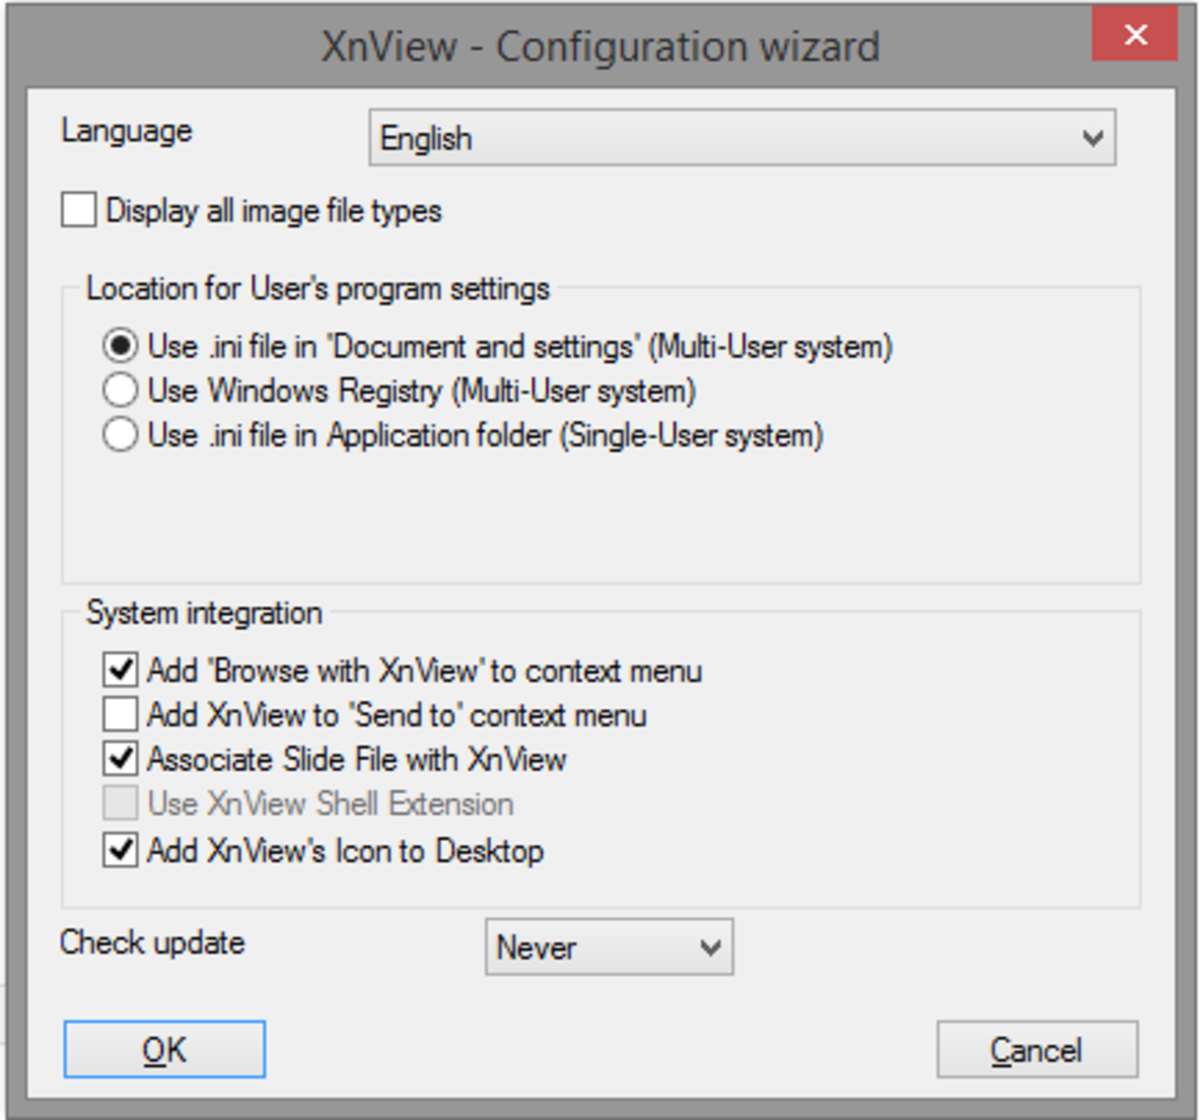 The initial configuration screen for XnView, click OK to accept the default values.